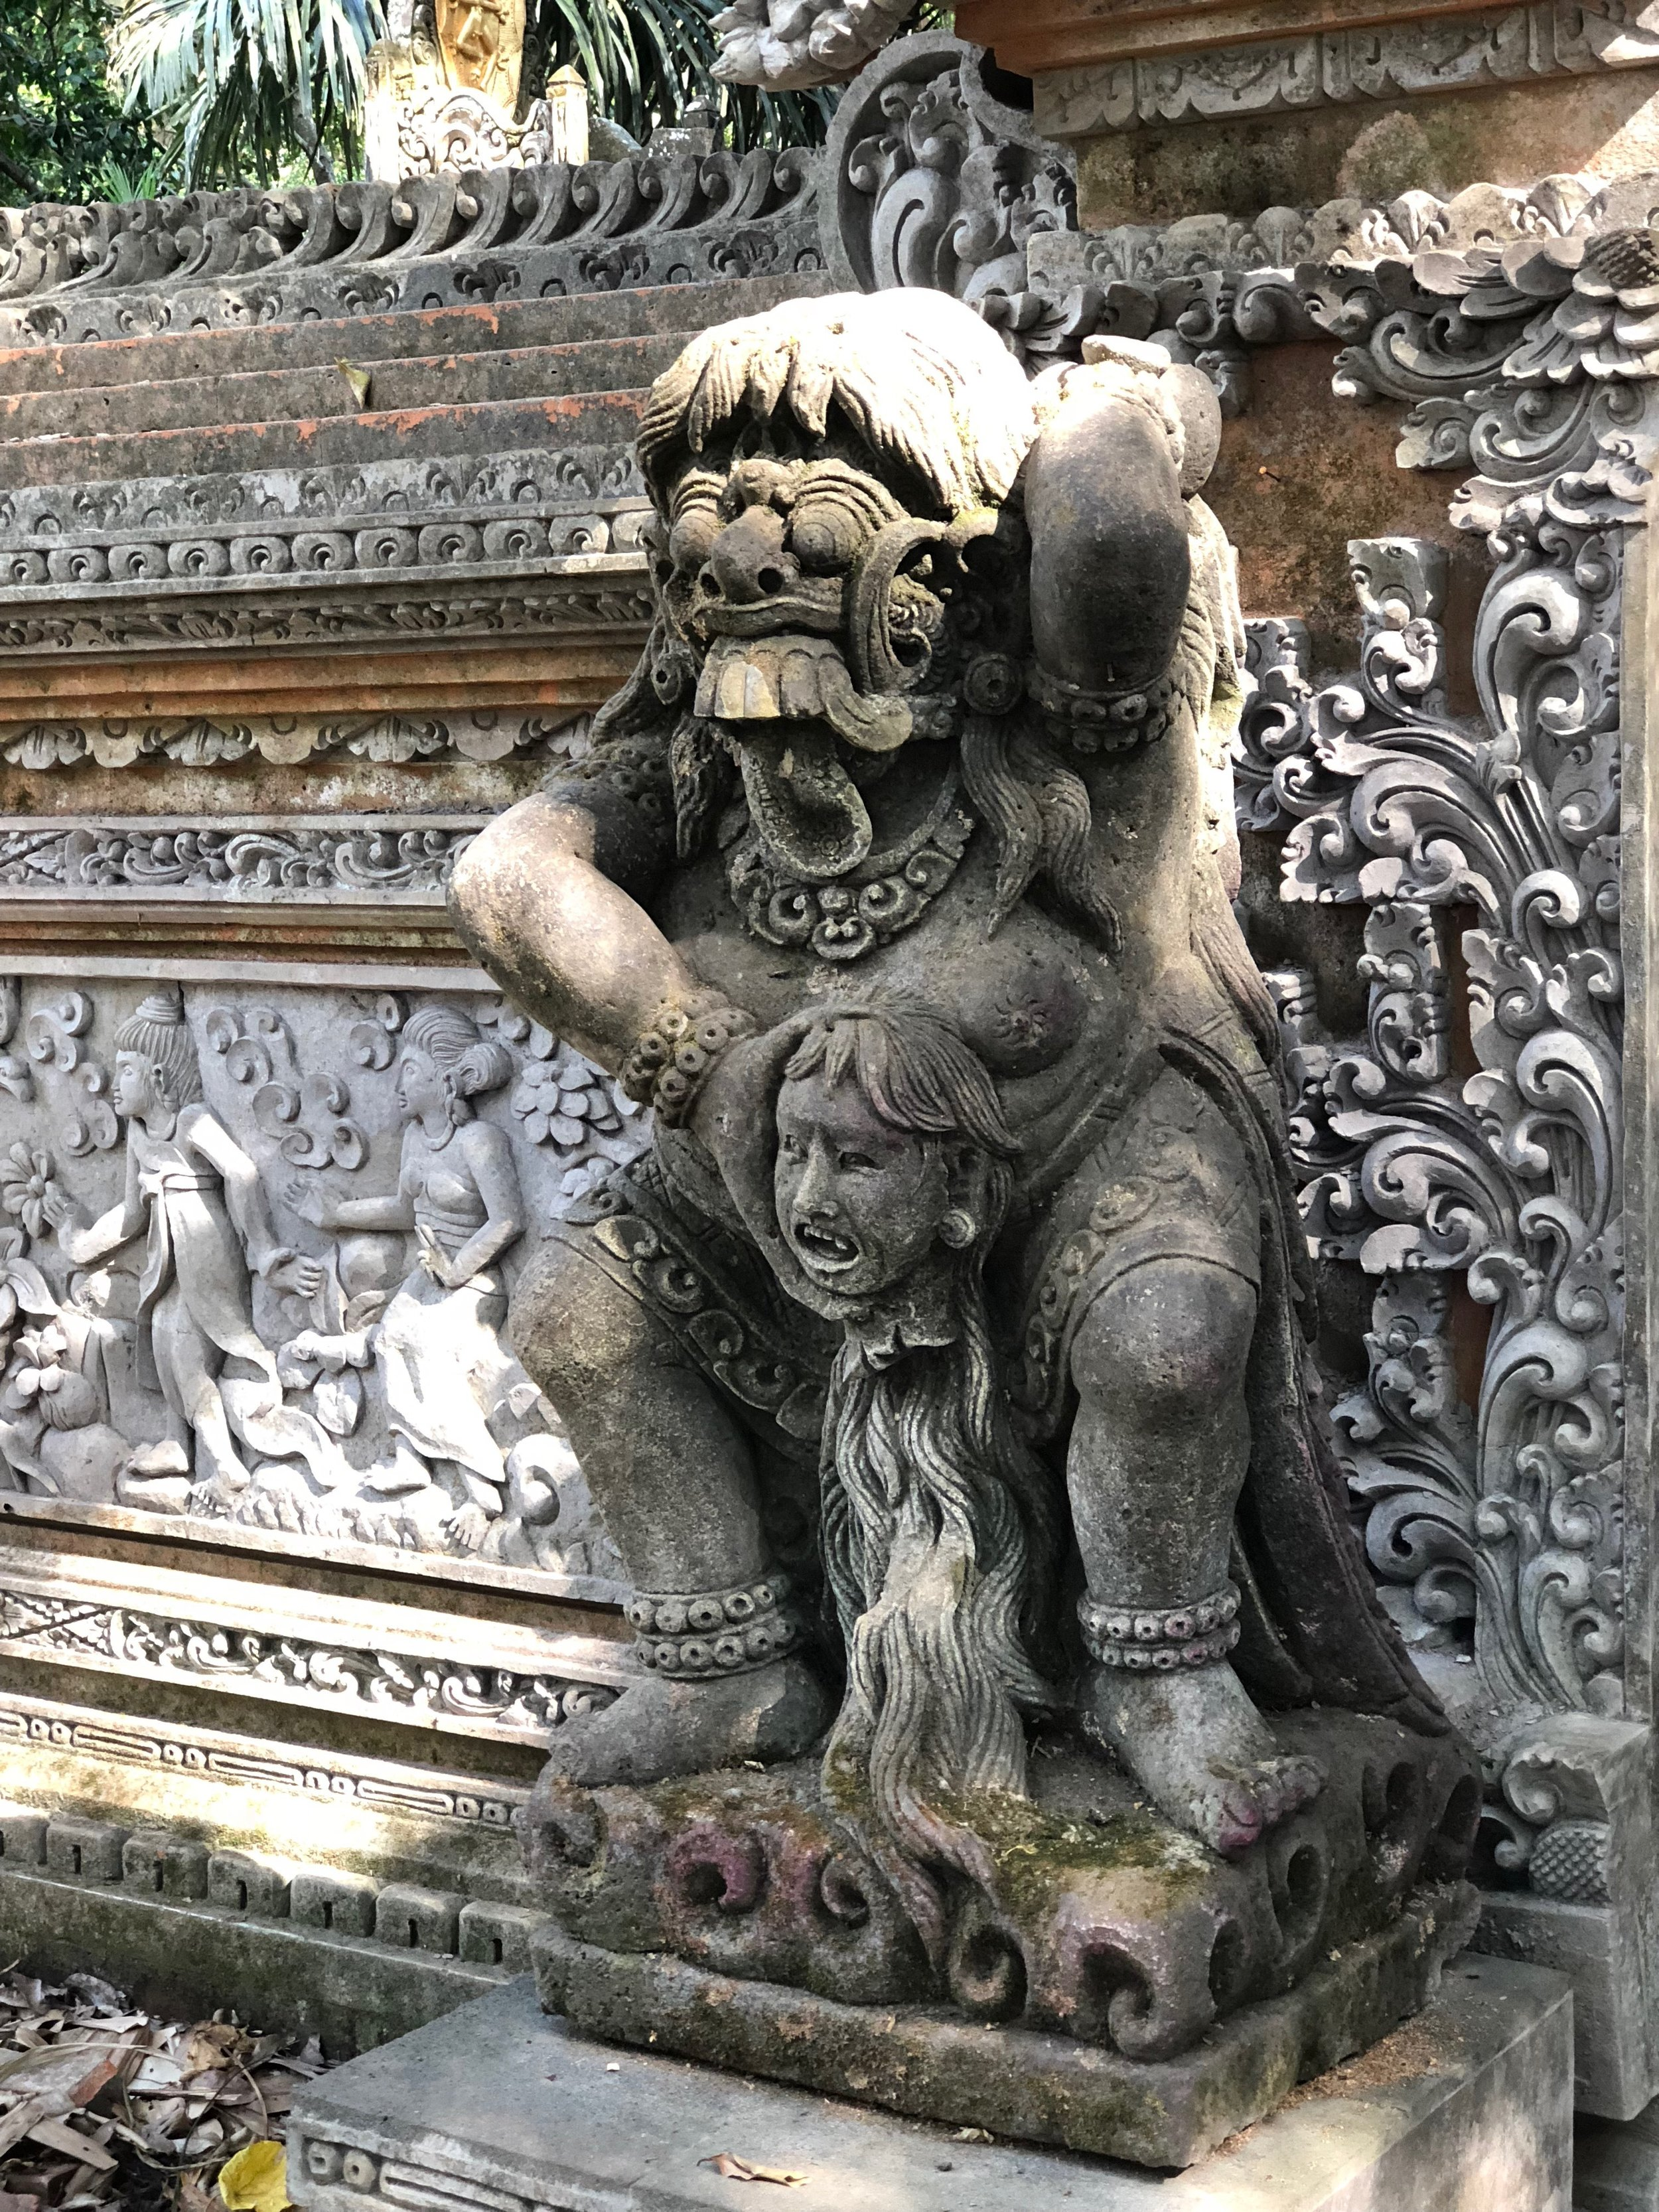 Statues of demons surround the temple of death